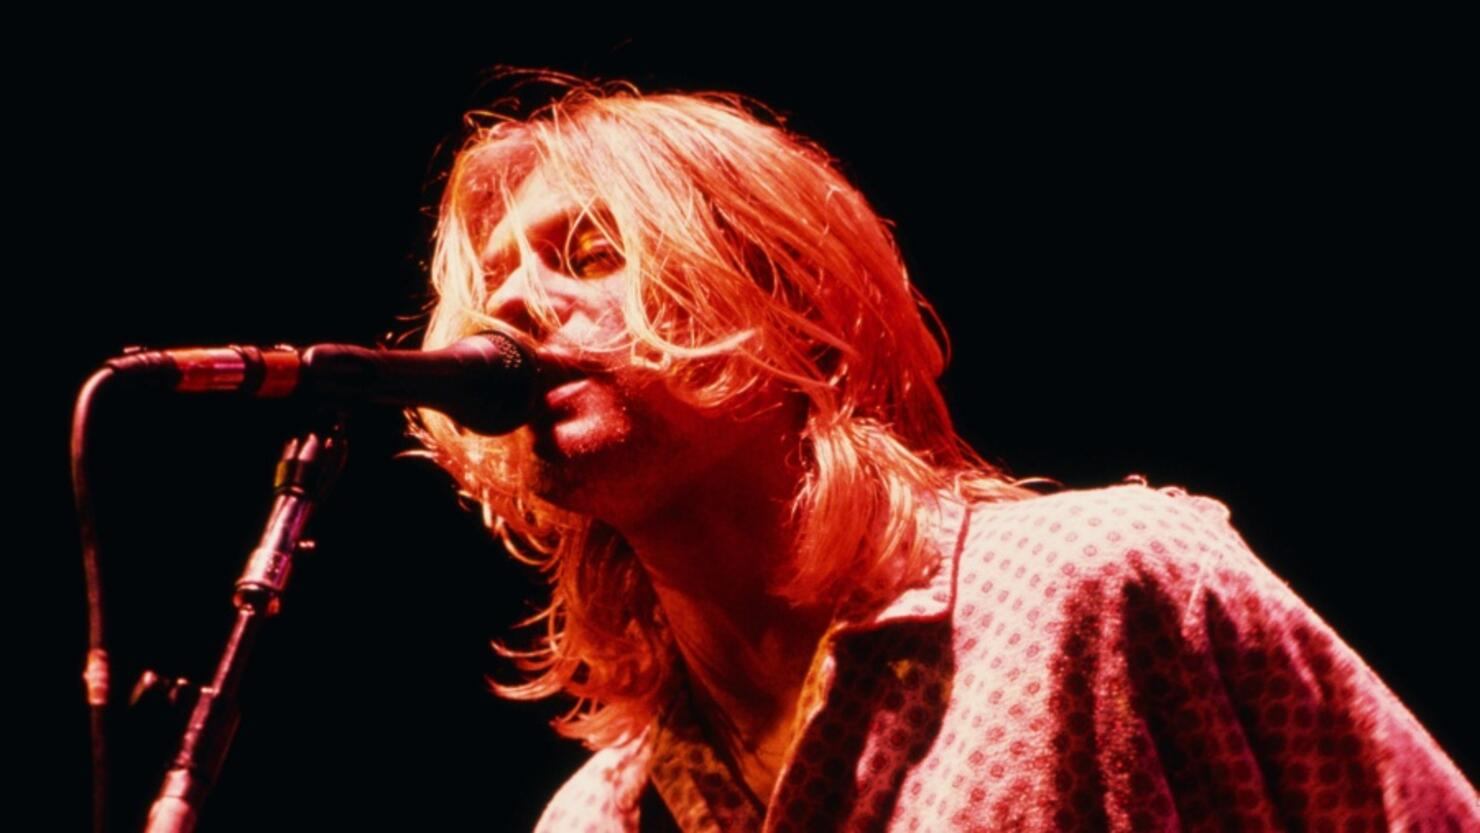 Cobain On Stage